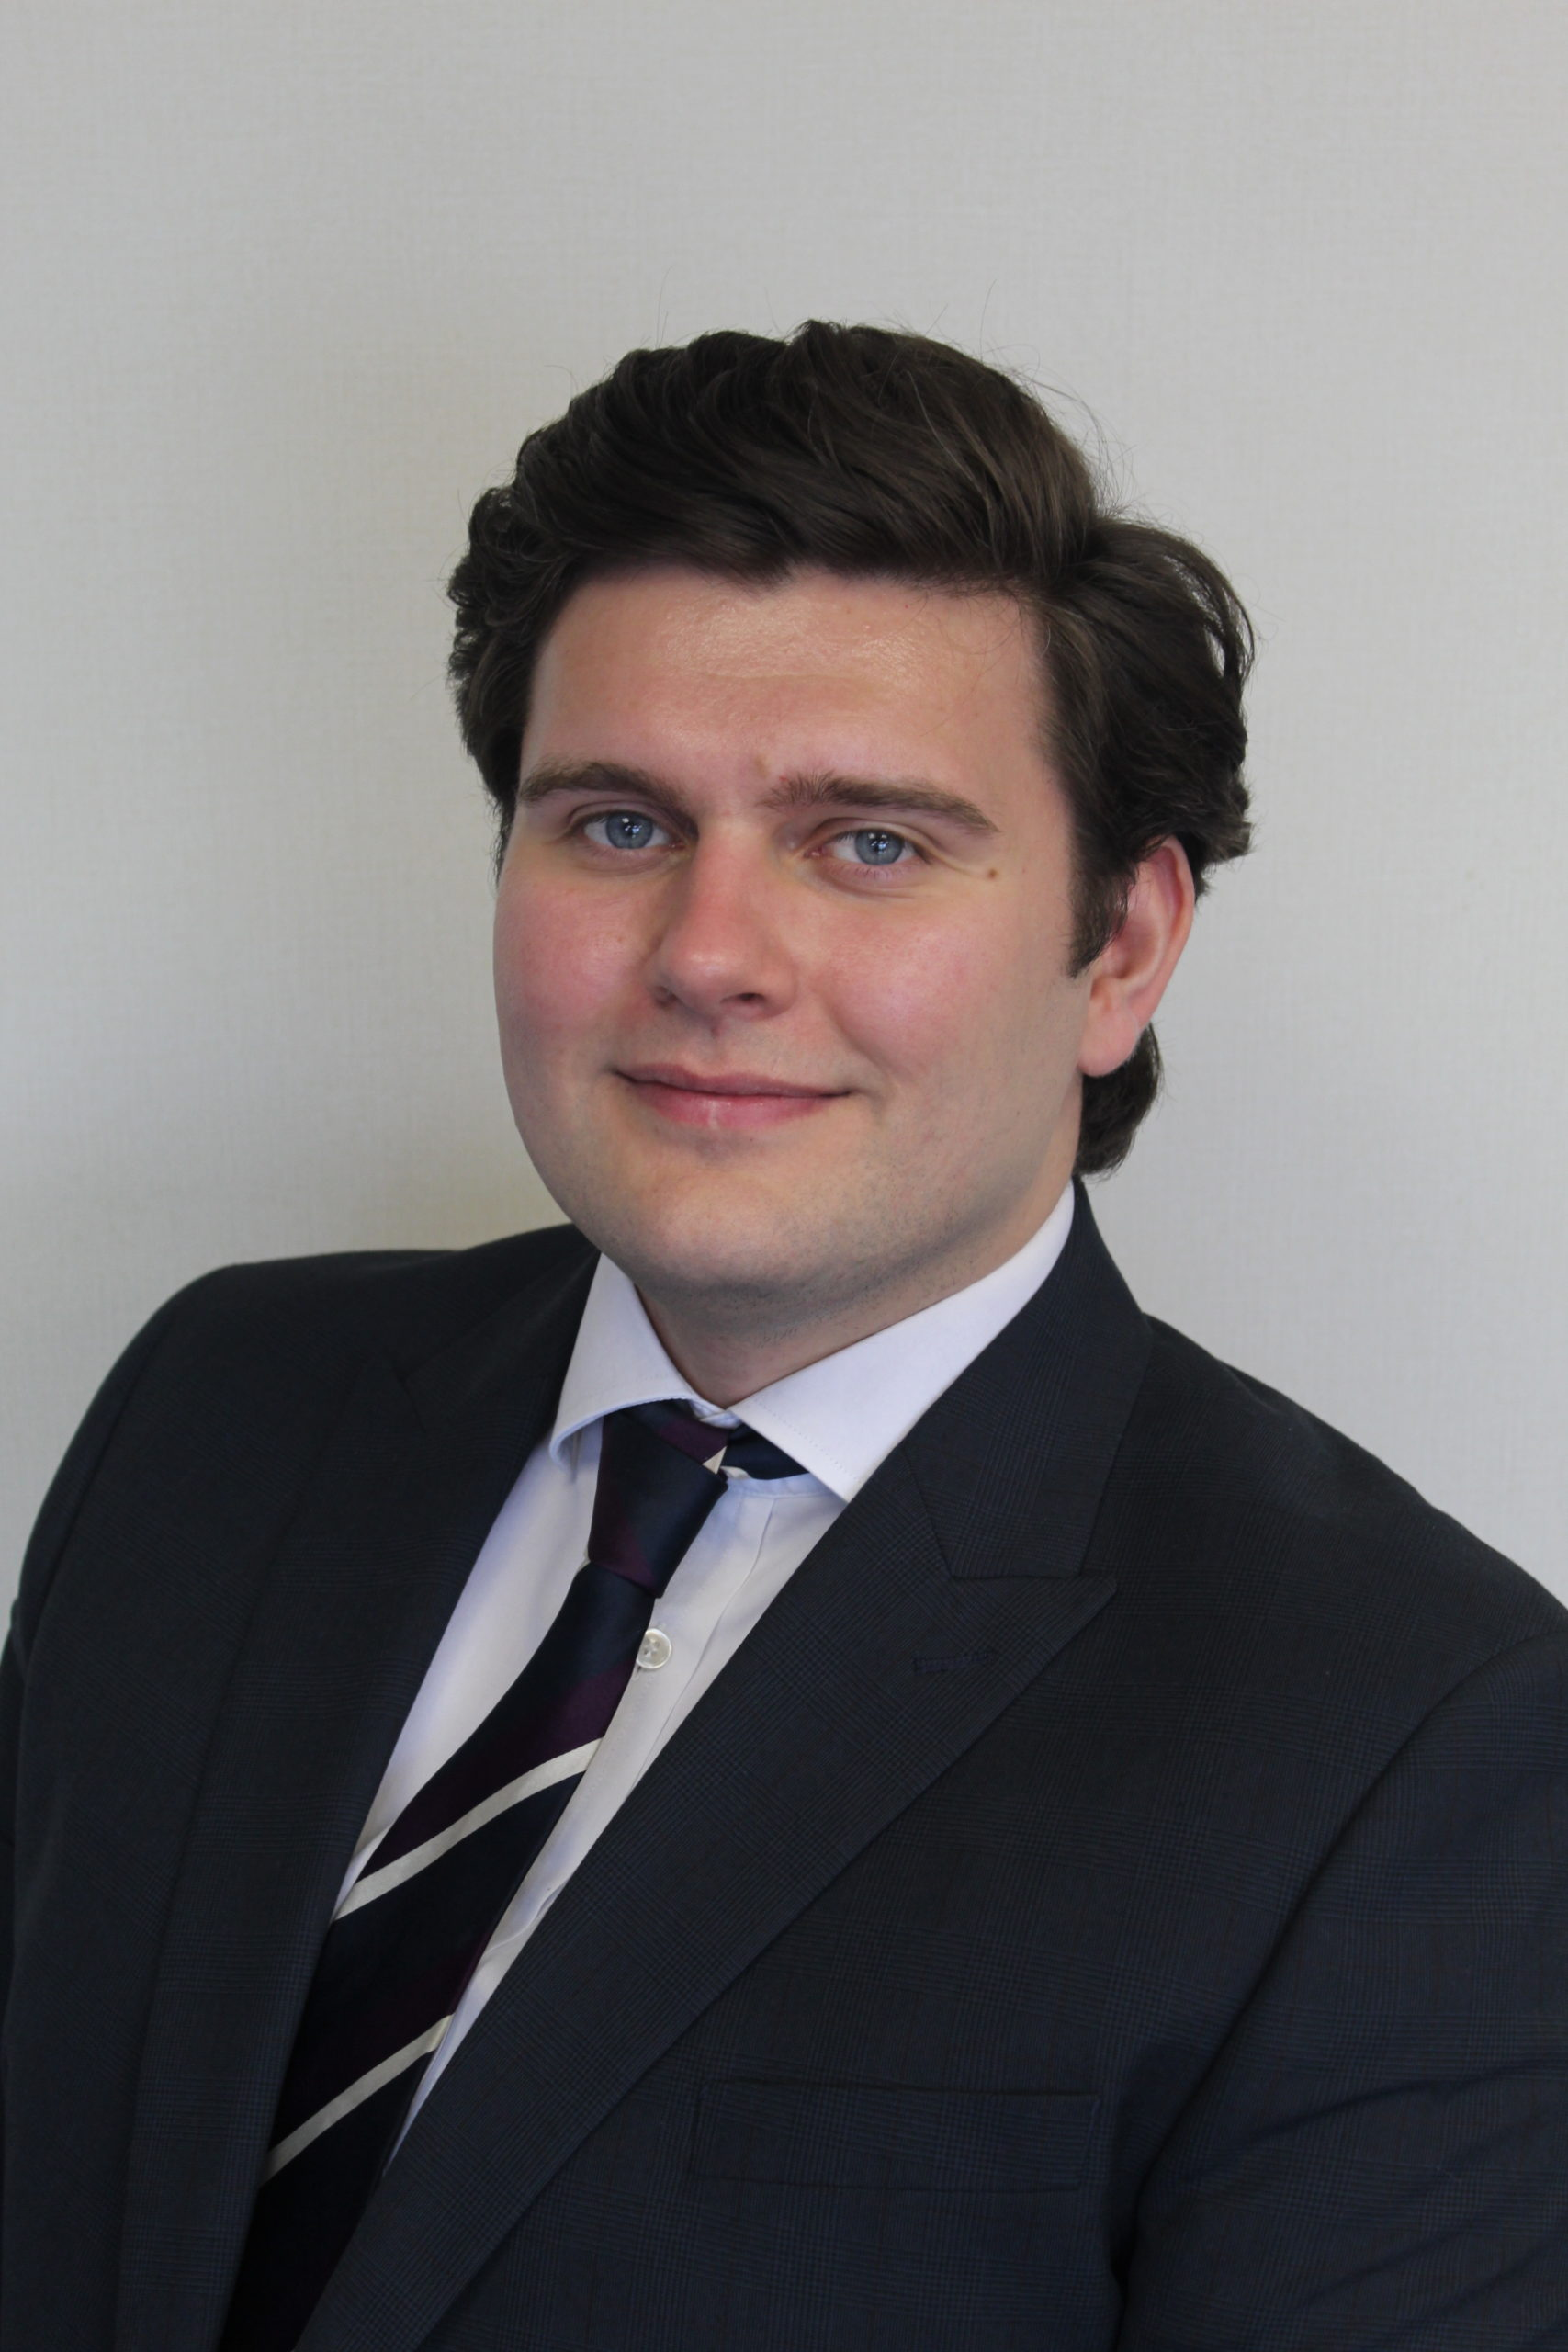 Ben Lomas, Audit Manager